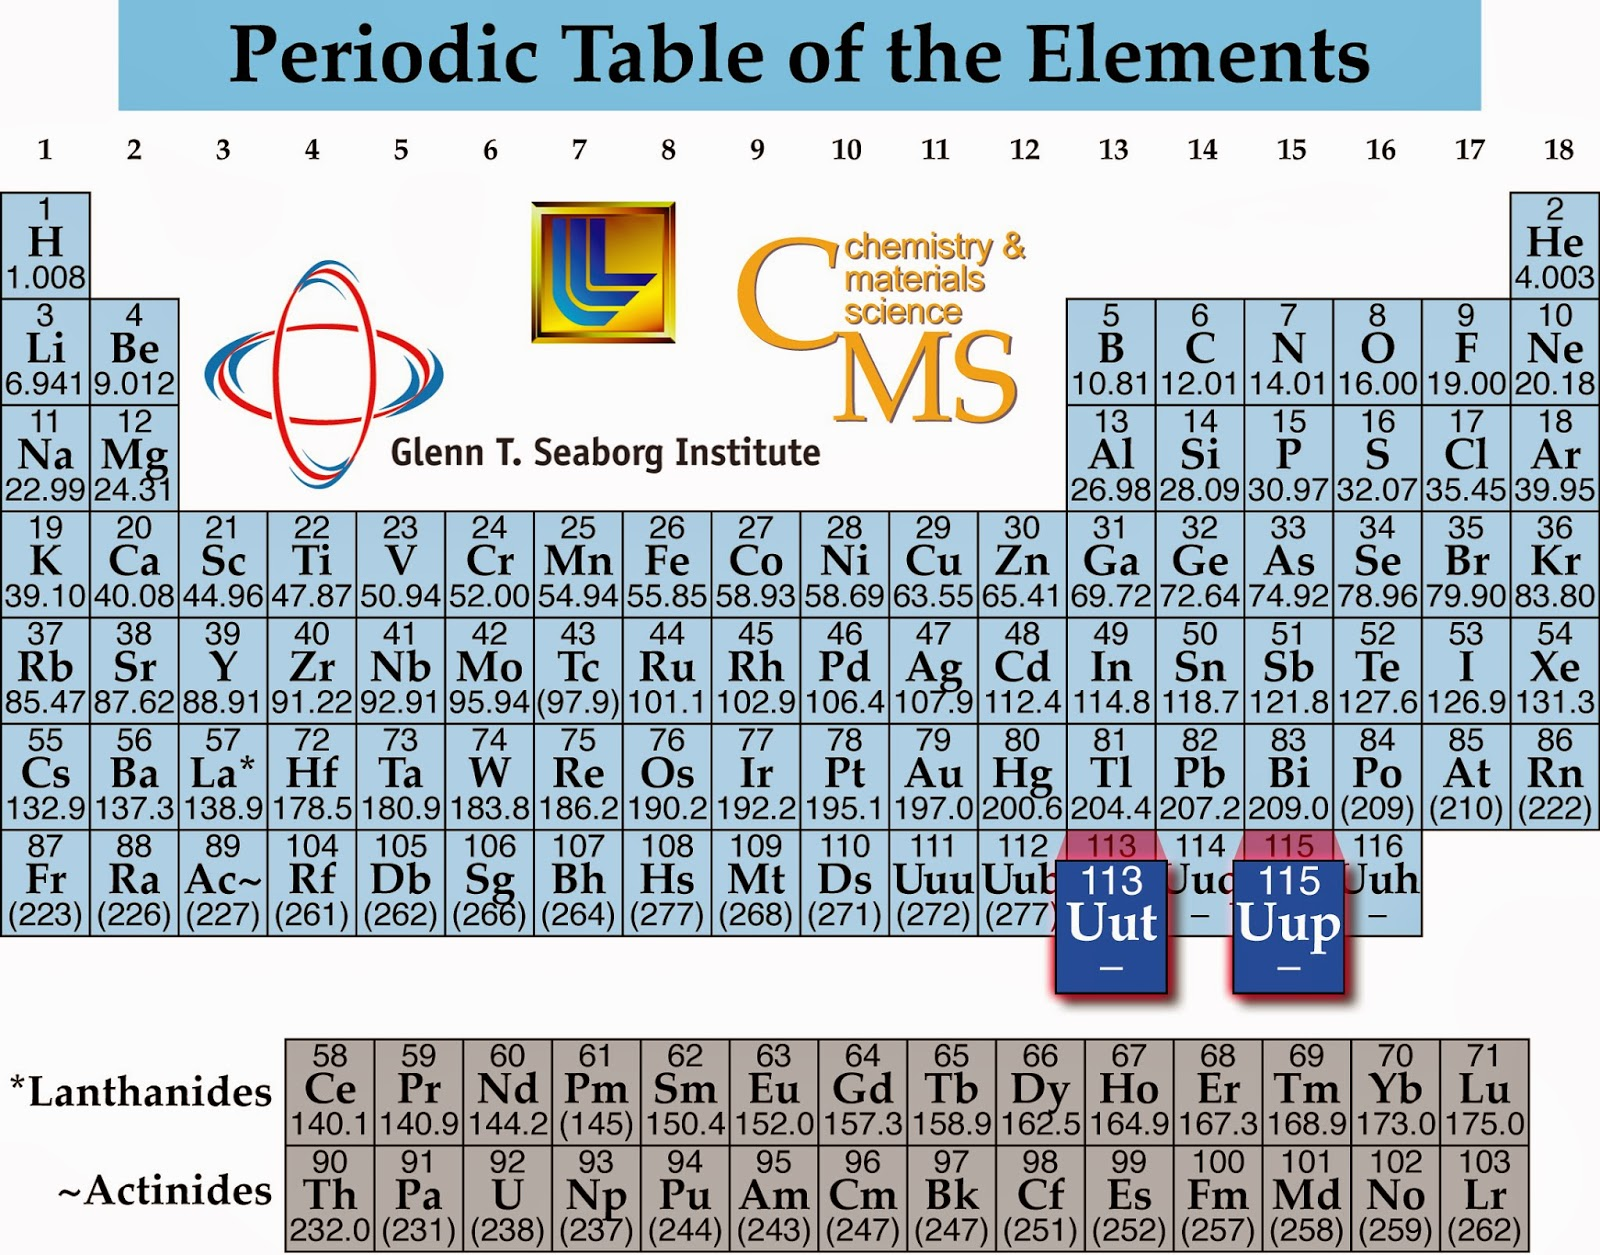 Science doing discovery of element 115 pic courtesyhttpswww plsllnlurlscienceandtechnology chemistry elements113and115 gamestrikefo Image collections